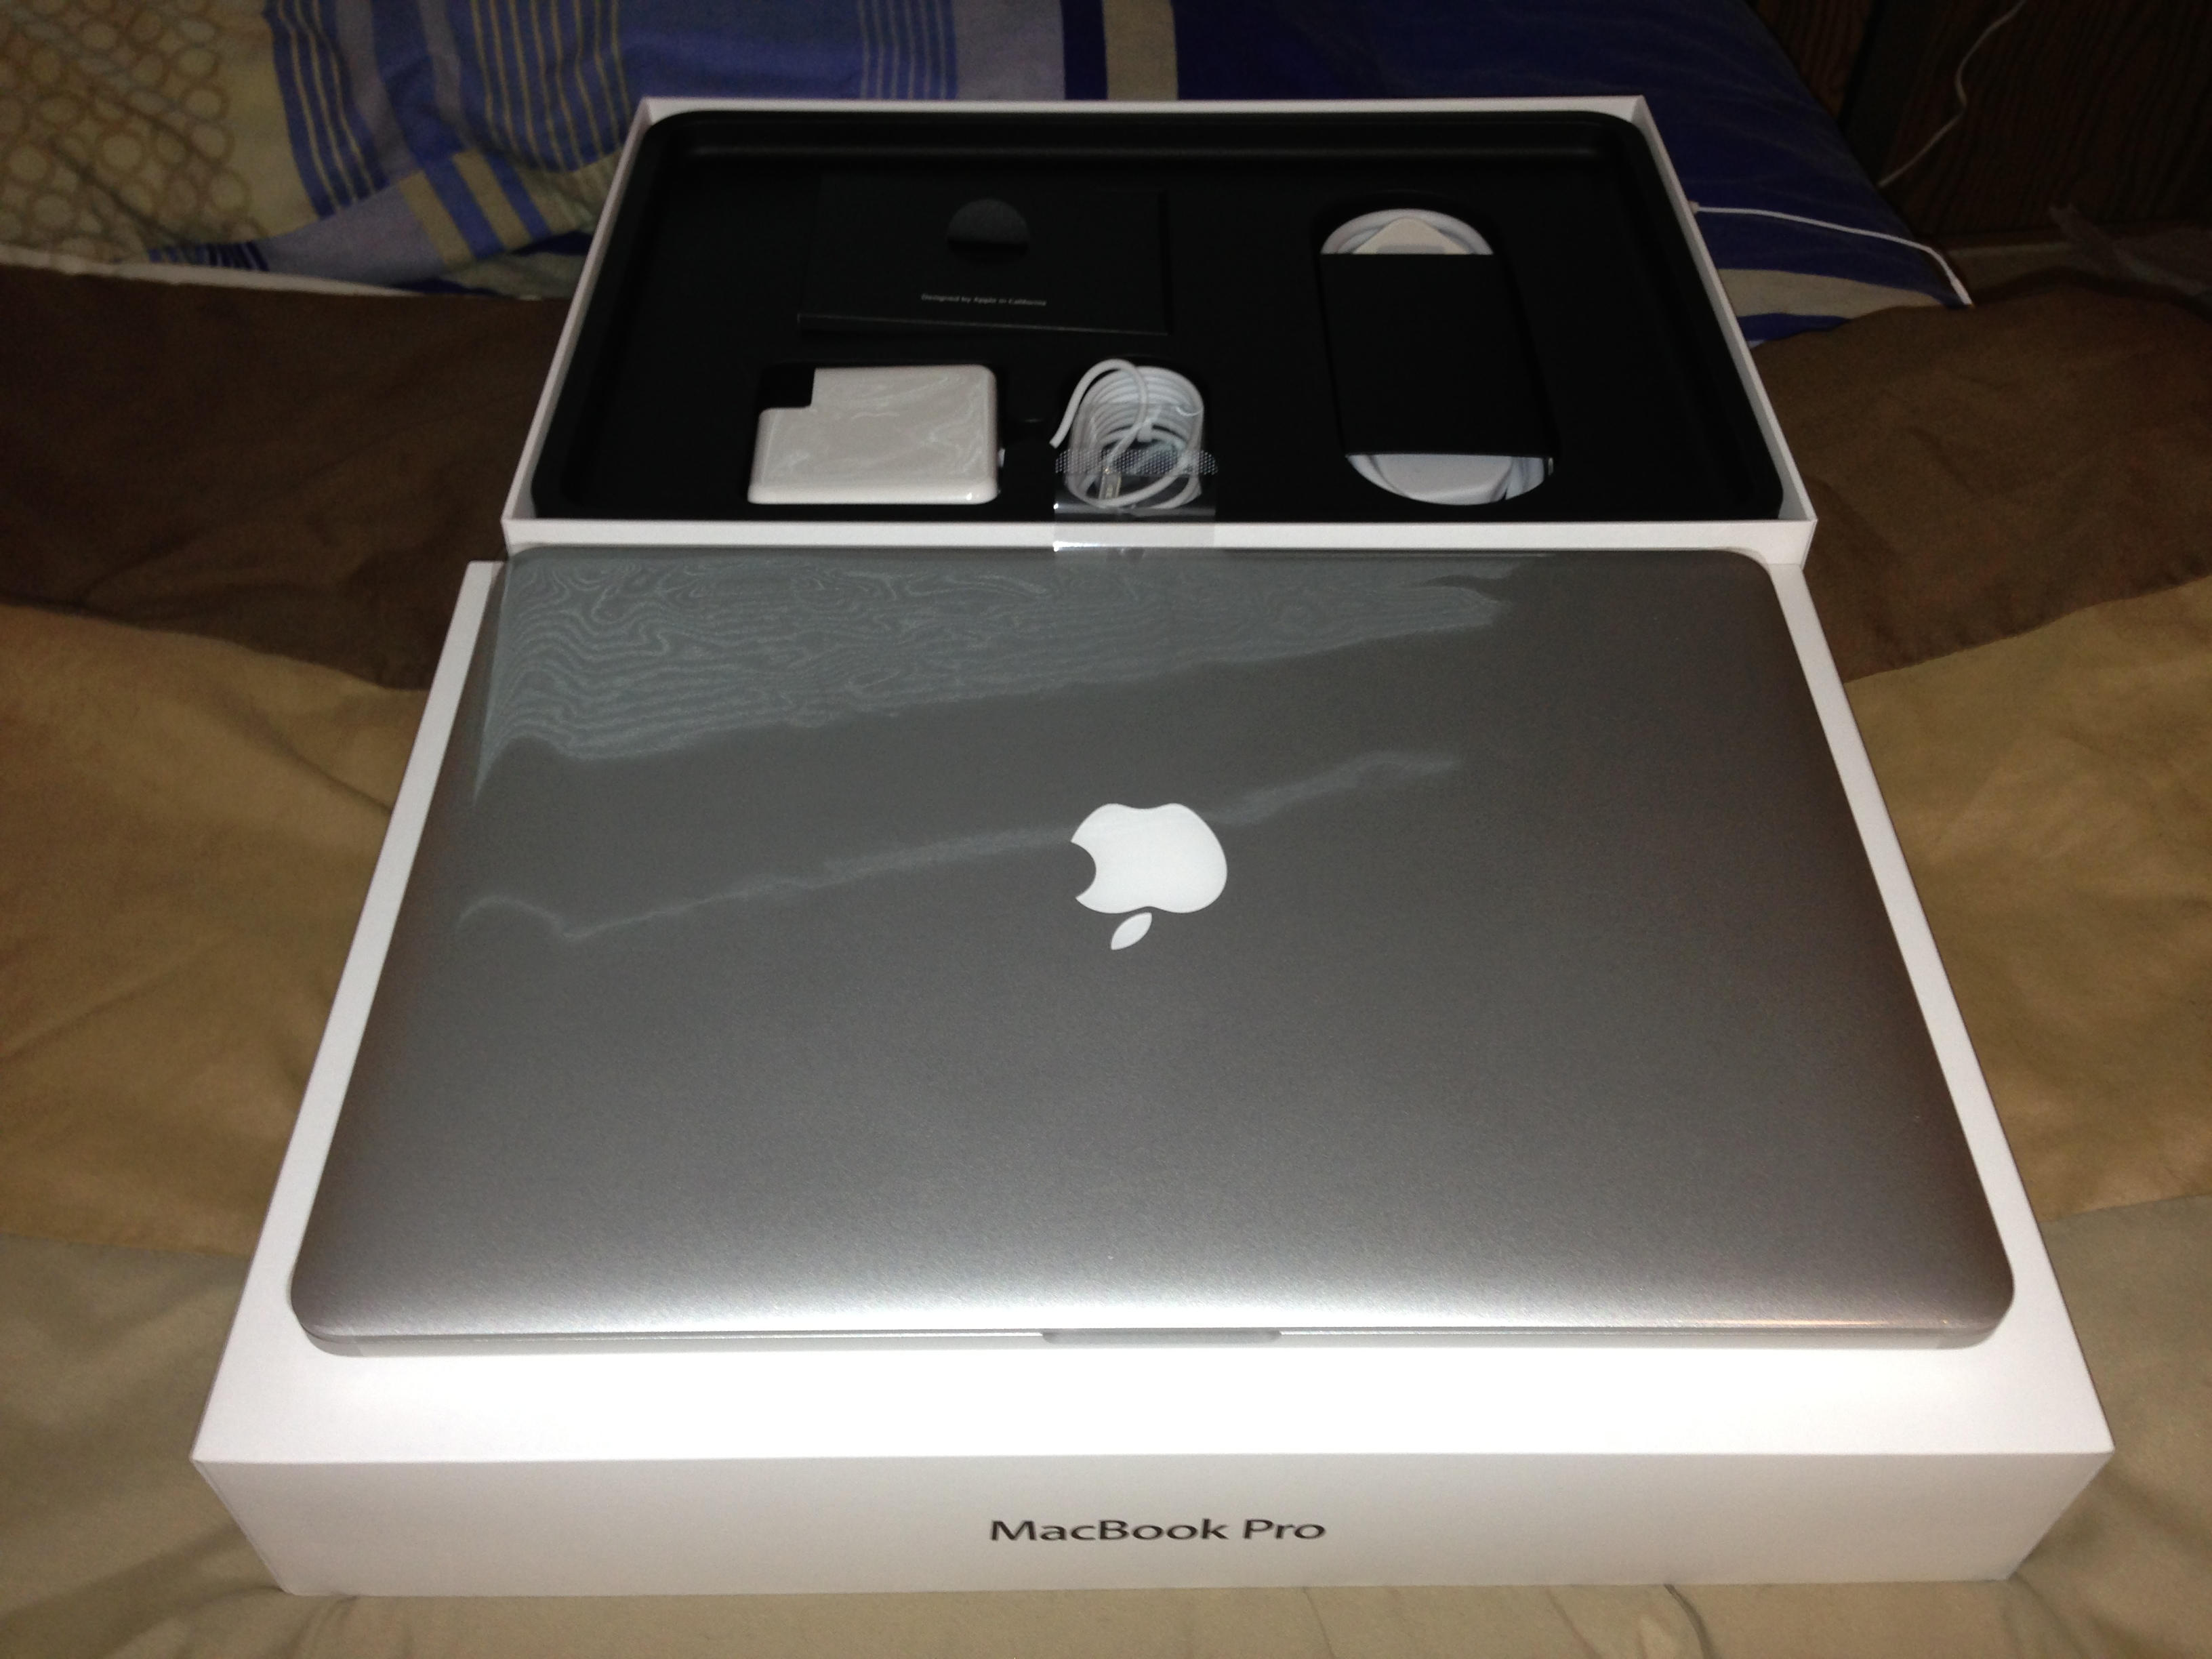 The MacBook Pro Retina and its box